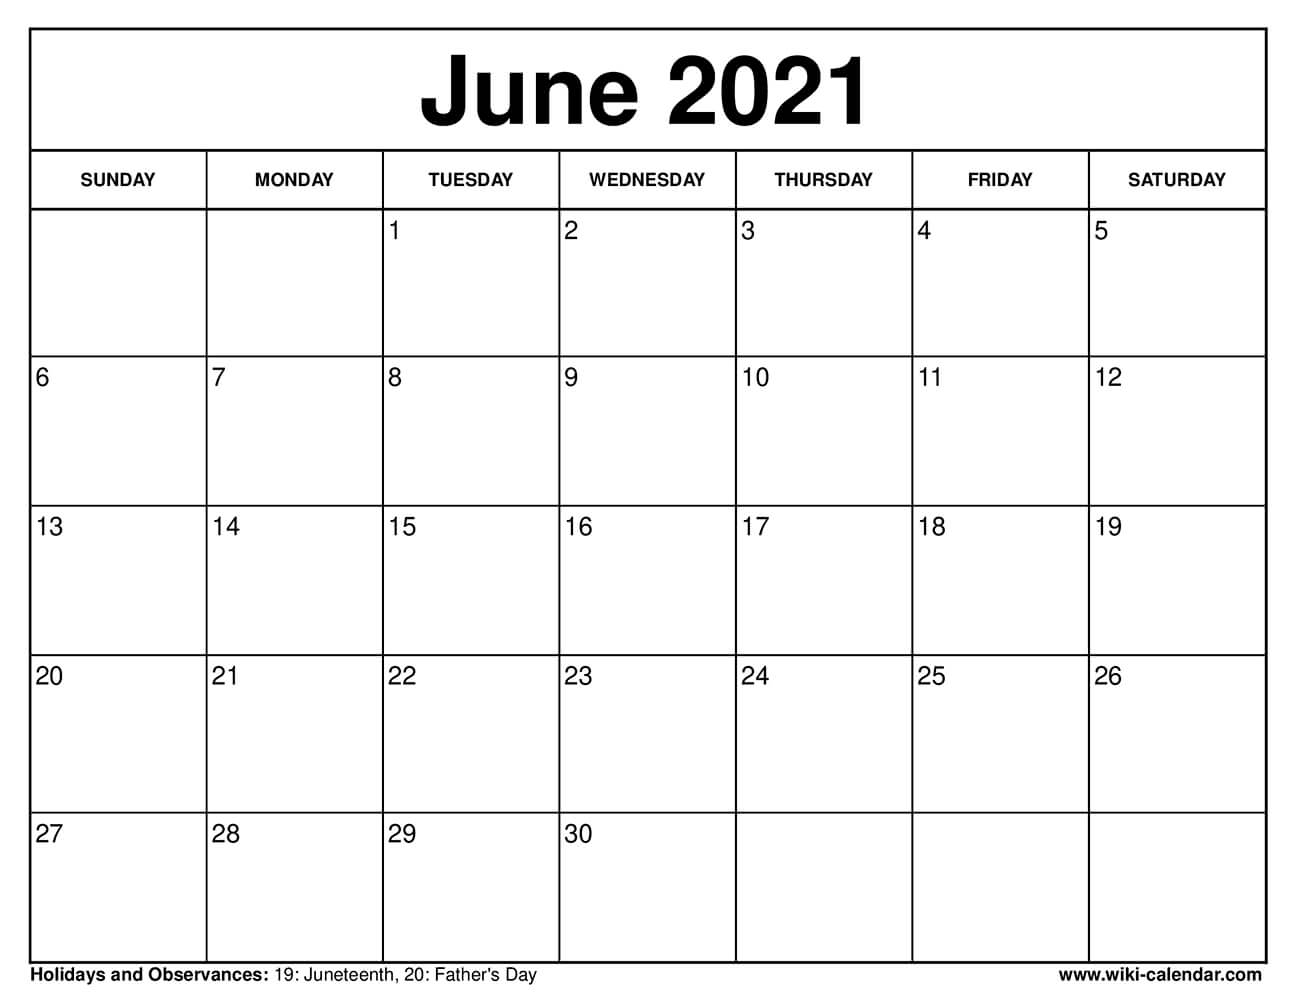 June 2021 Calendar Printable with Holidays